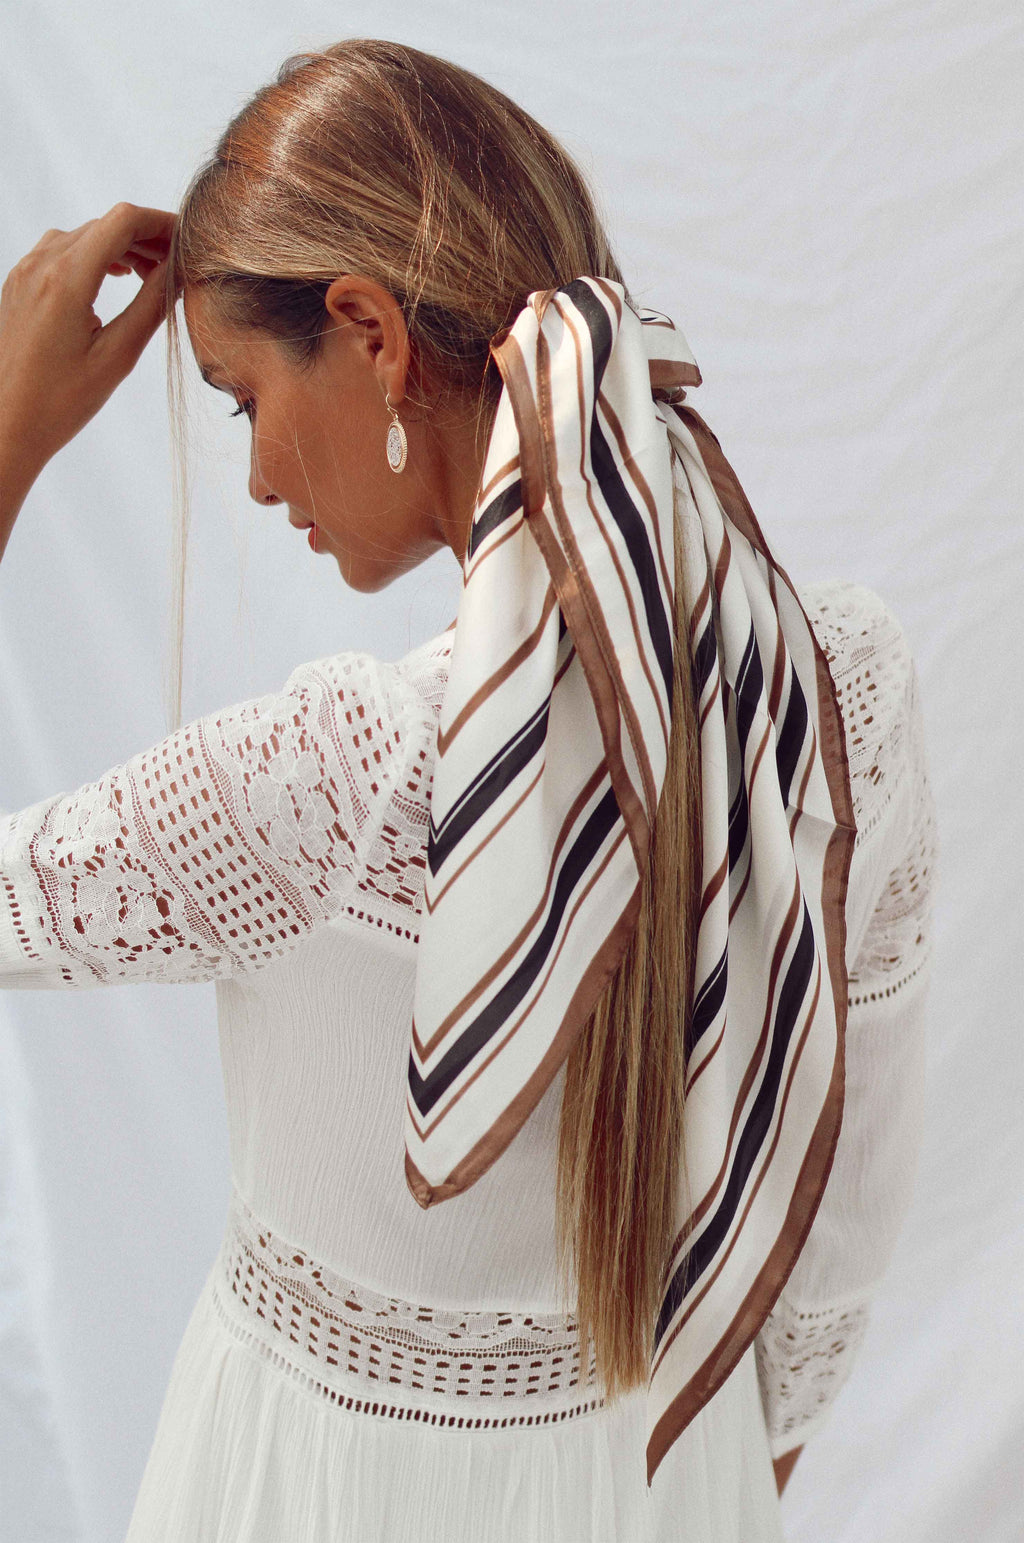 MAISON HEADBAND | Women's Online Shopping | CHICLEFRIQUE  (2100820934745)